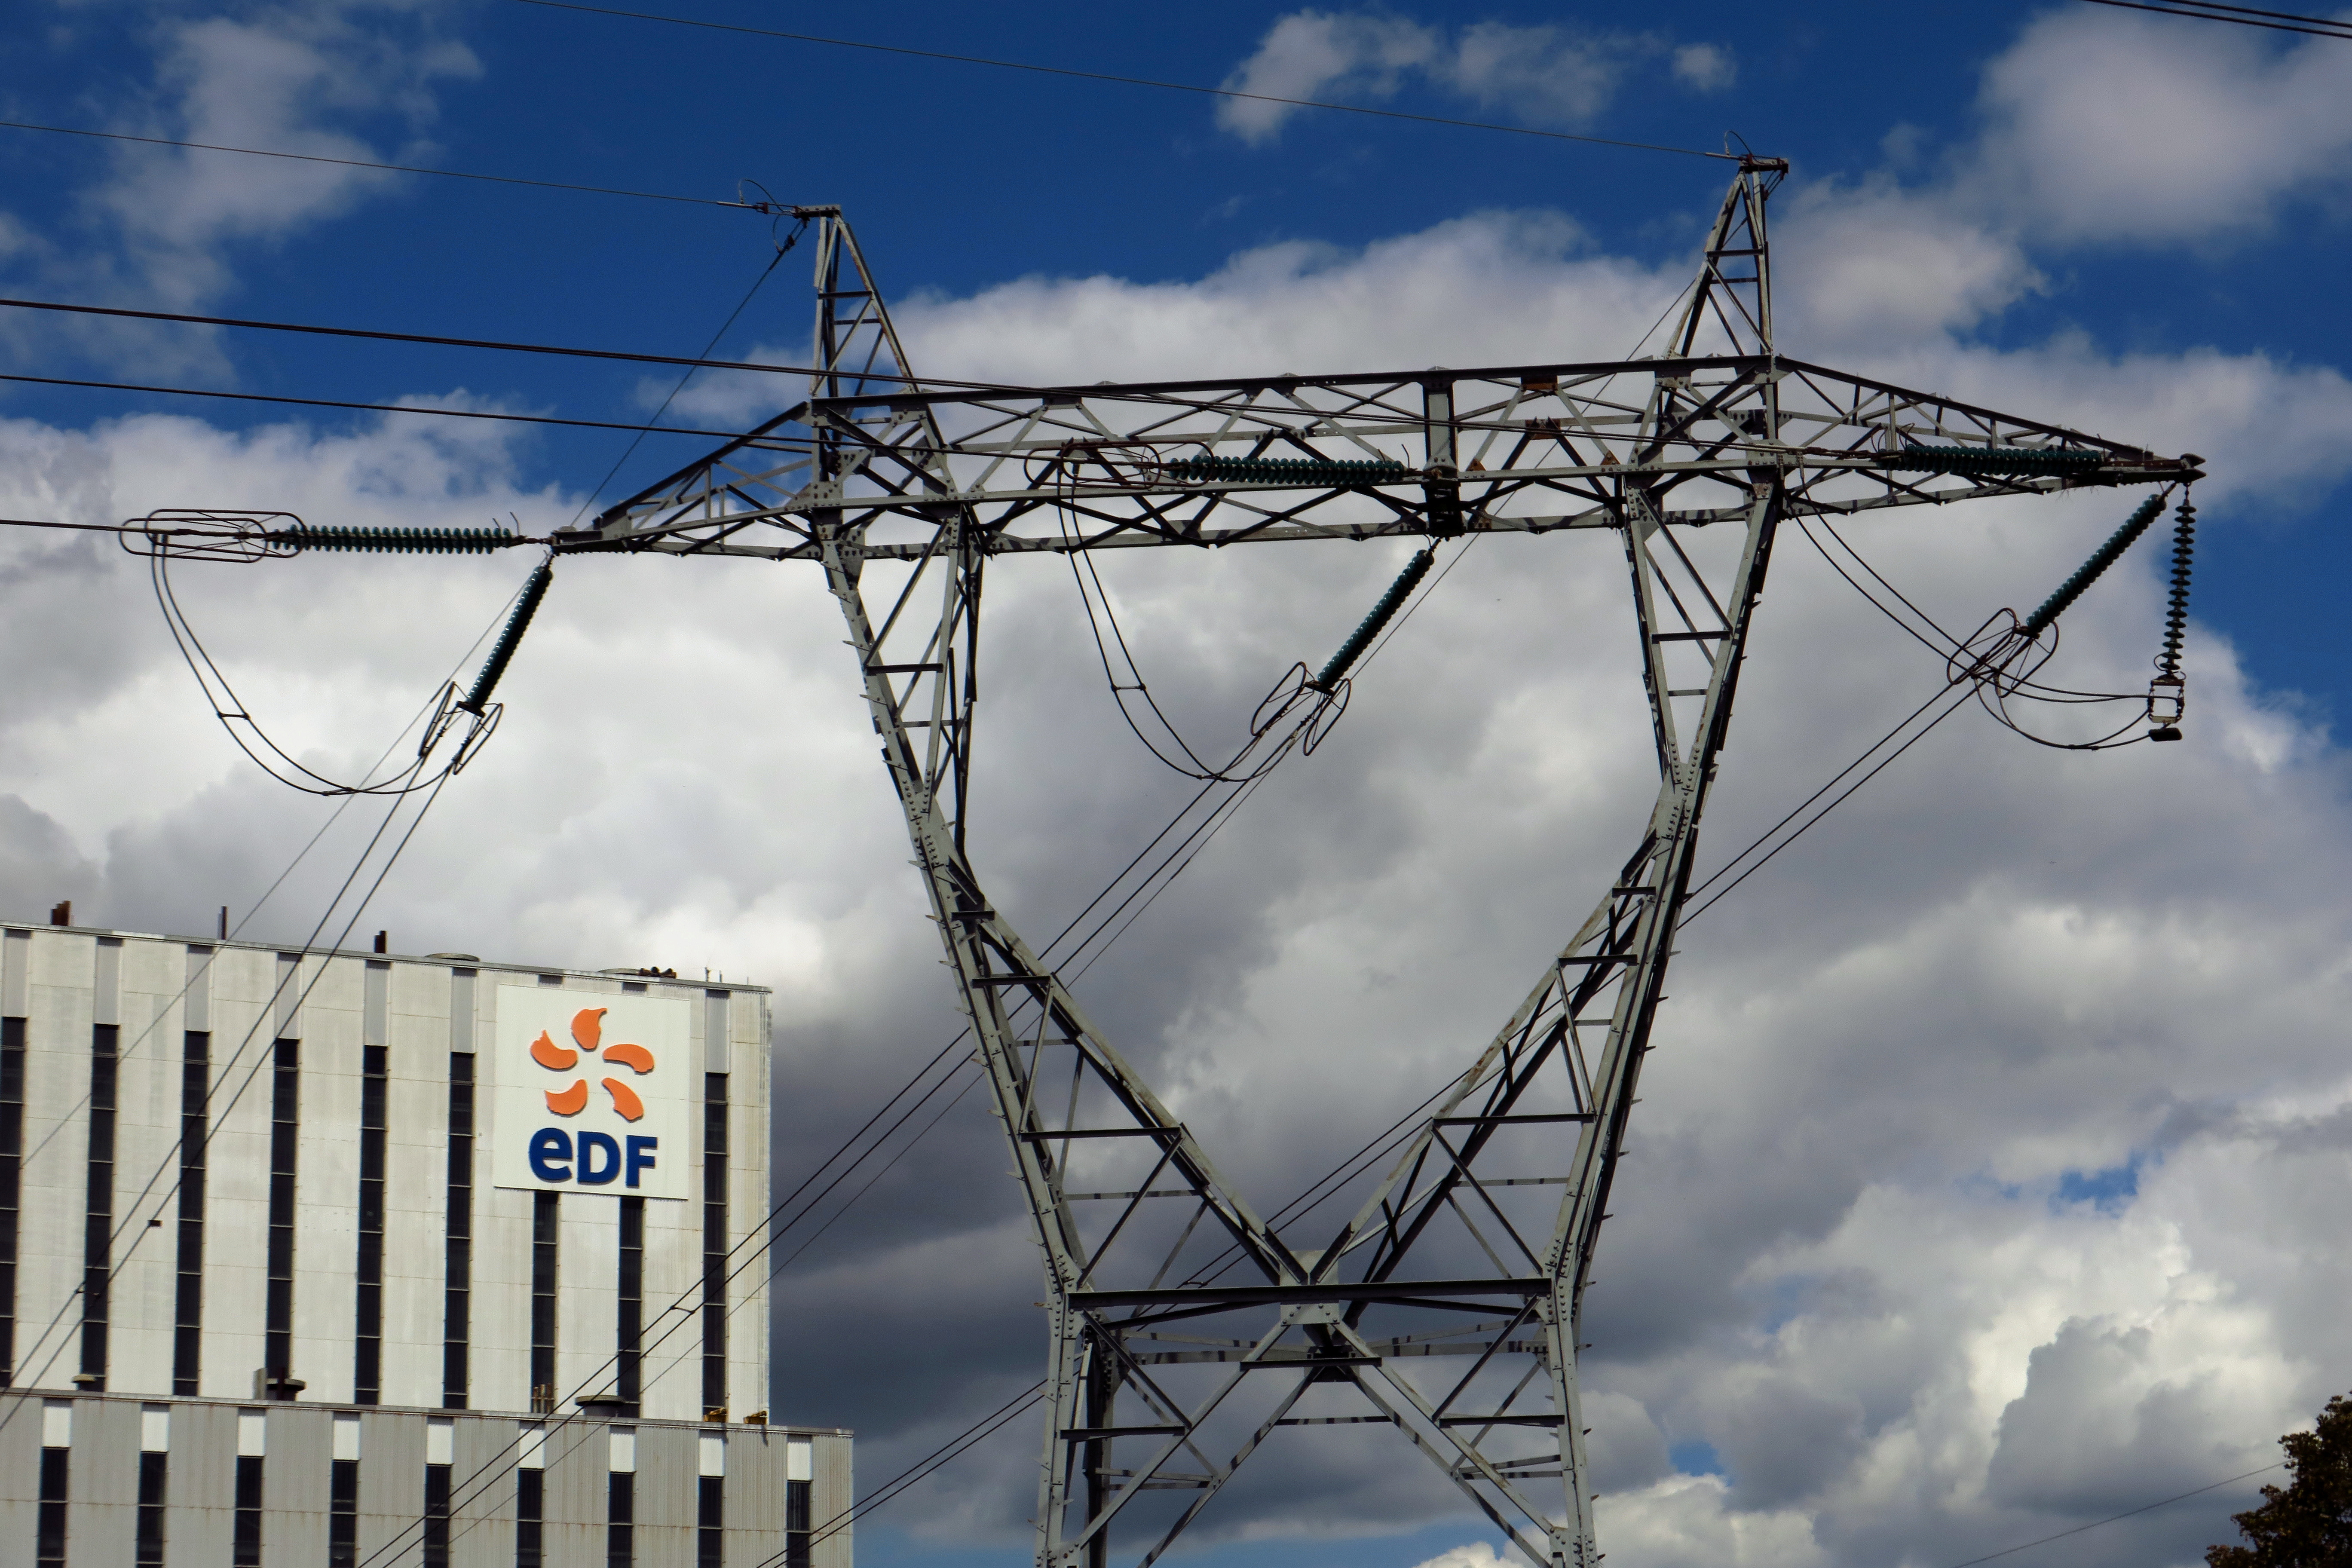 Electrical power pylons of high-tension electricity power lines are seen next to the EDF power plant in Bouchain, near Valenciennes, France, July 7, 2020. REUTERS/Pascal Rossignol